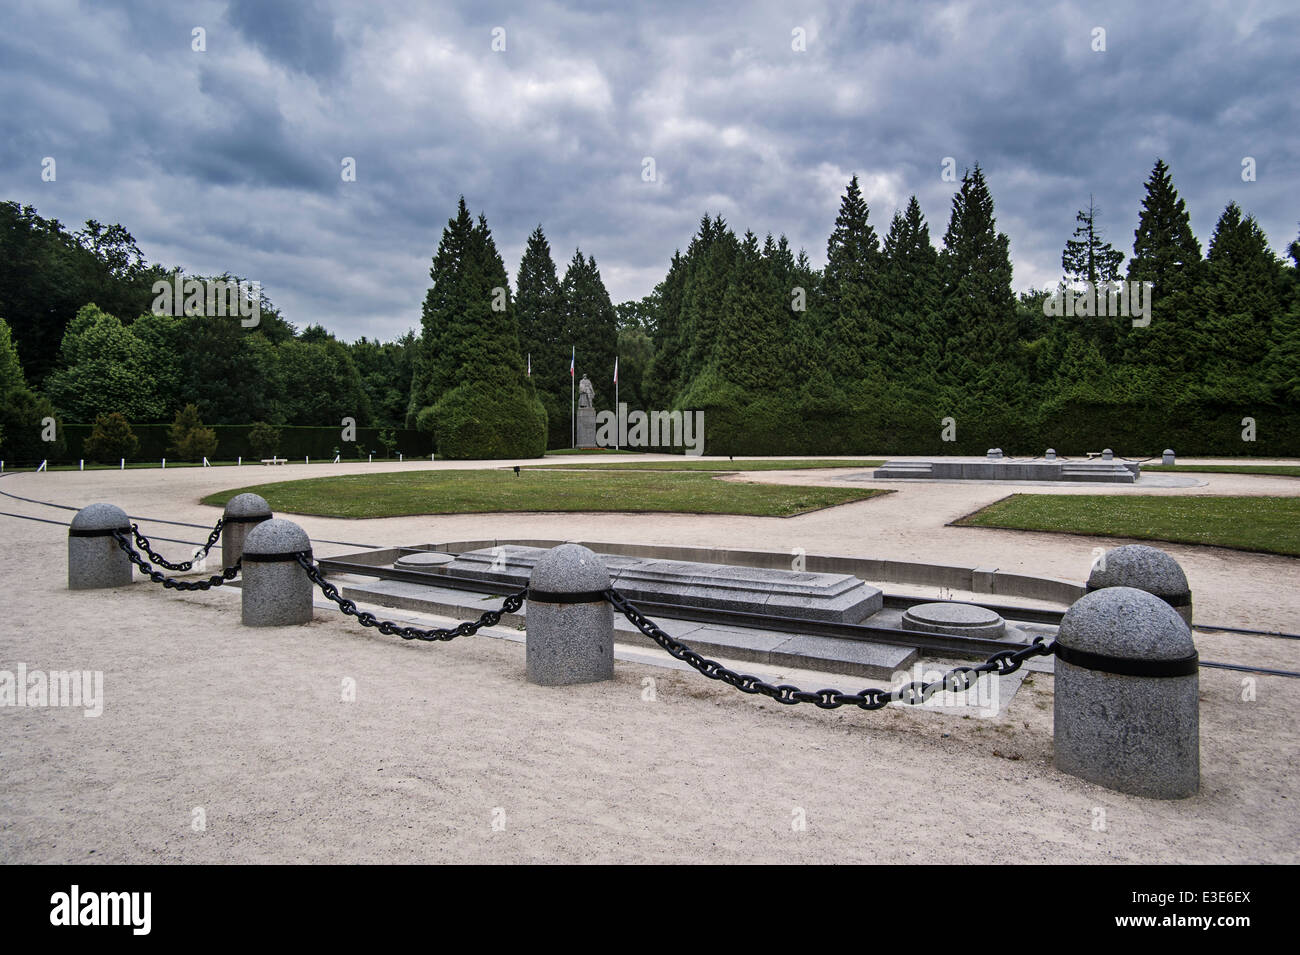 Rethondes clearing / Glade of the Armistice / Clairière de l'Armistice, WWI memorial and statue of Foch, - Stock Image